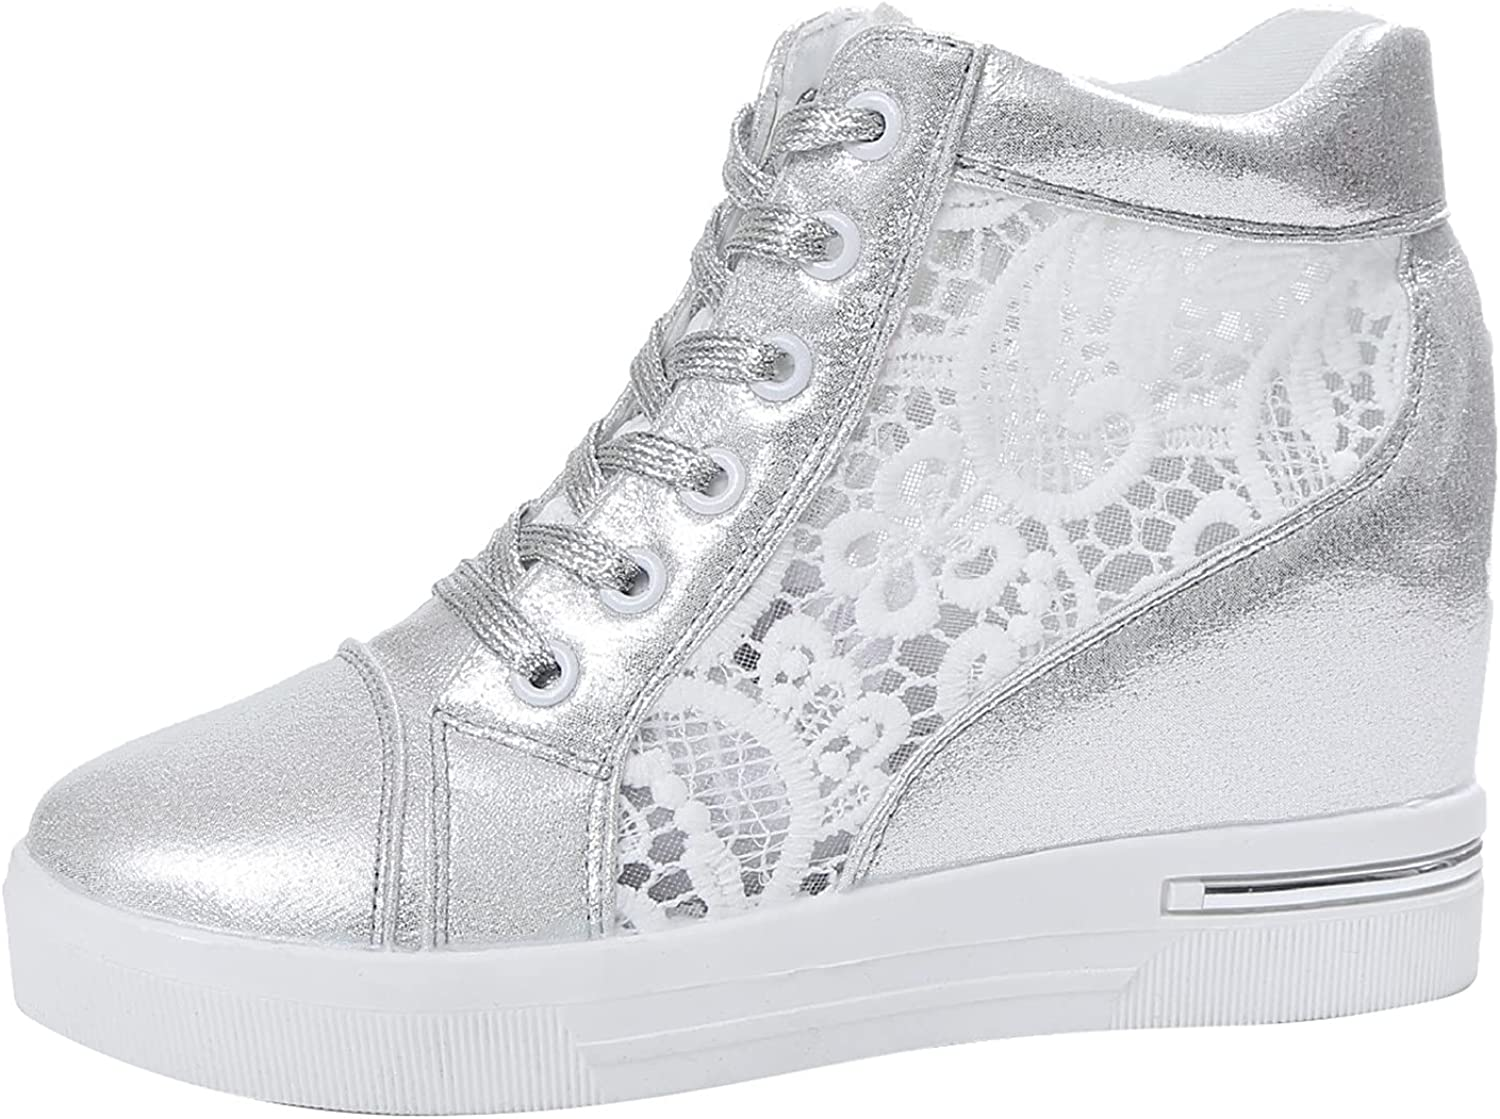 Women Wedge Platform Sneakers Rubber Leather Increasing Lace Sho